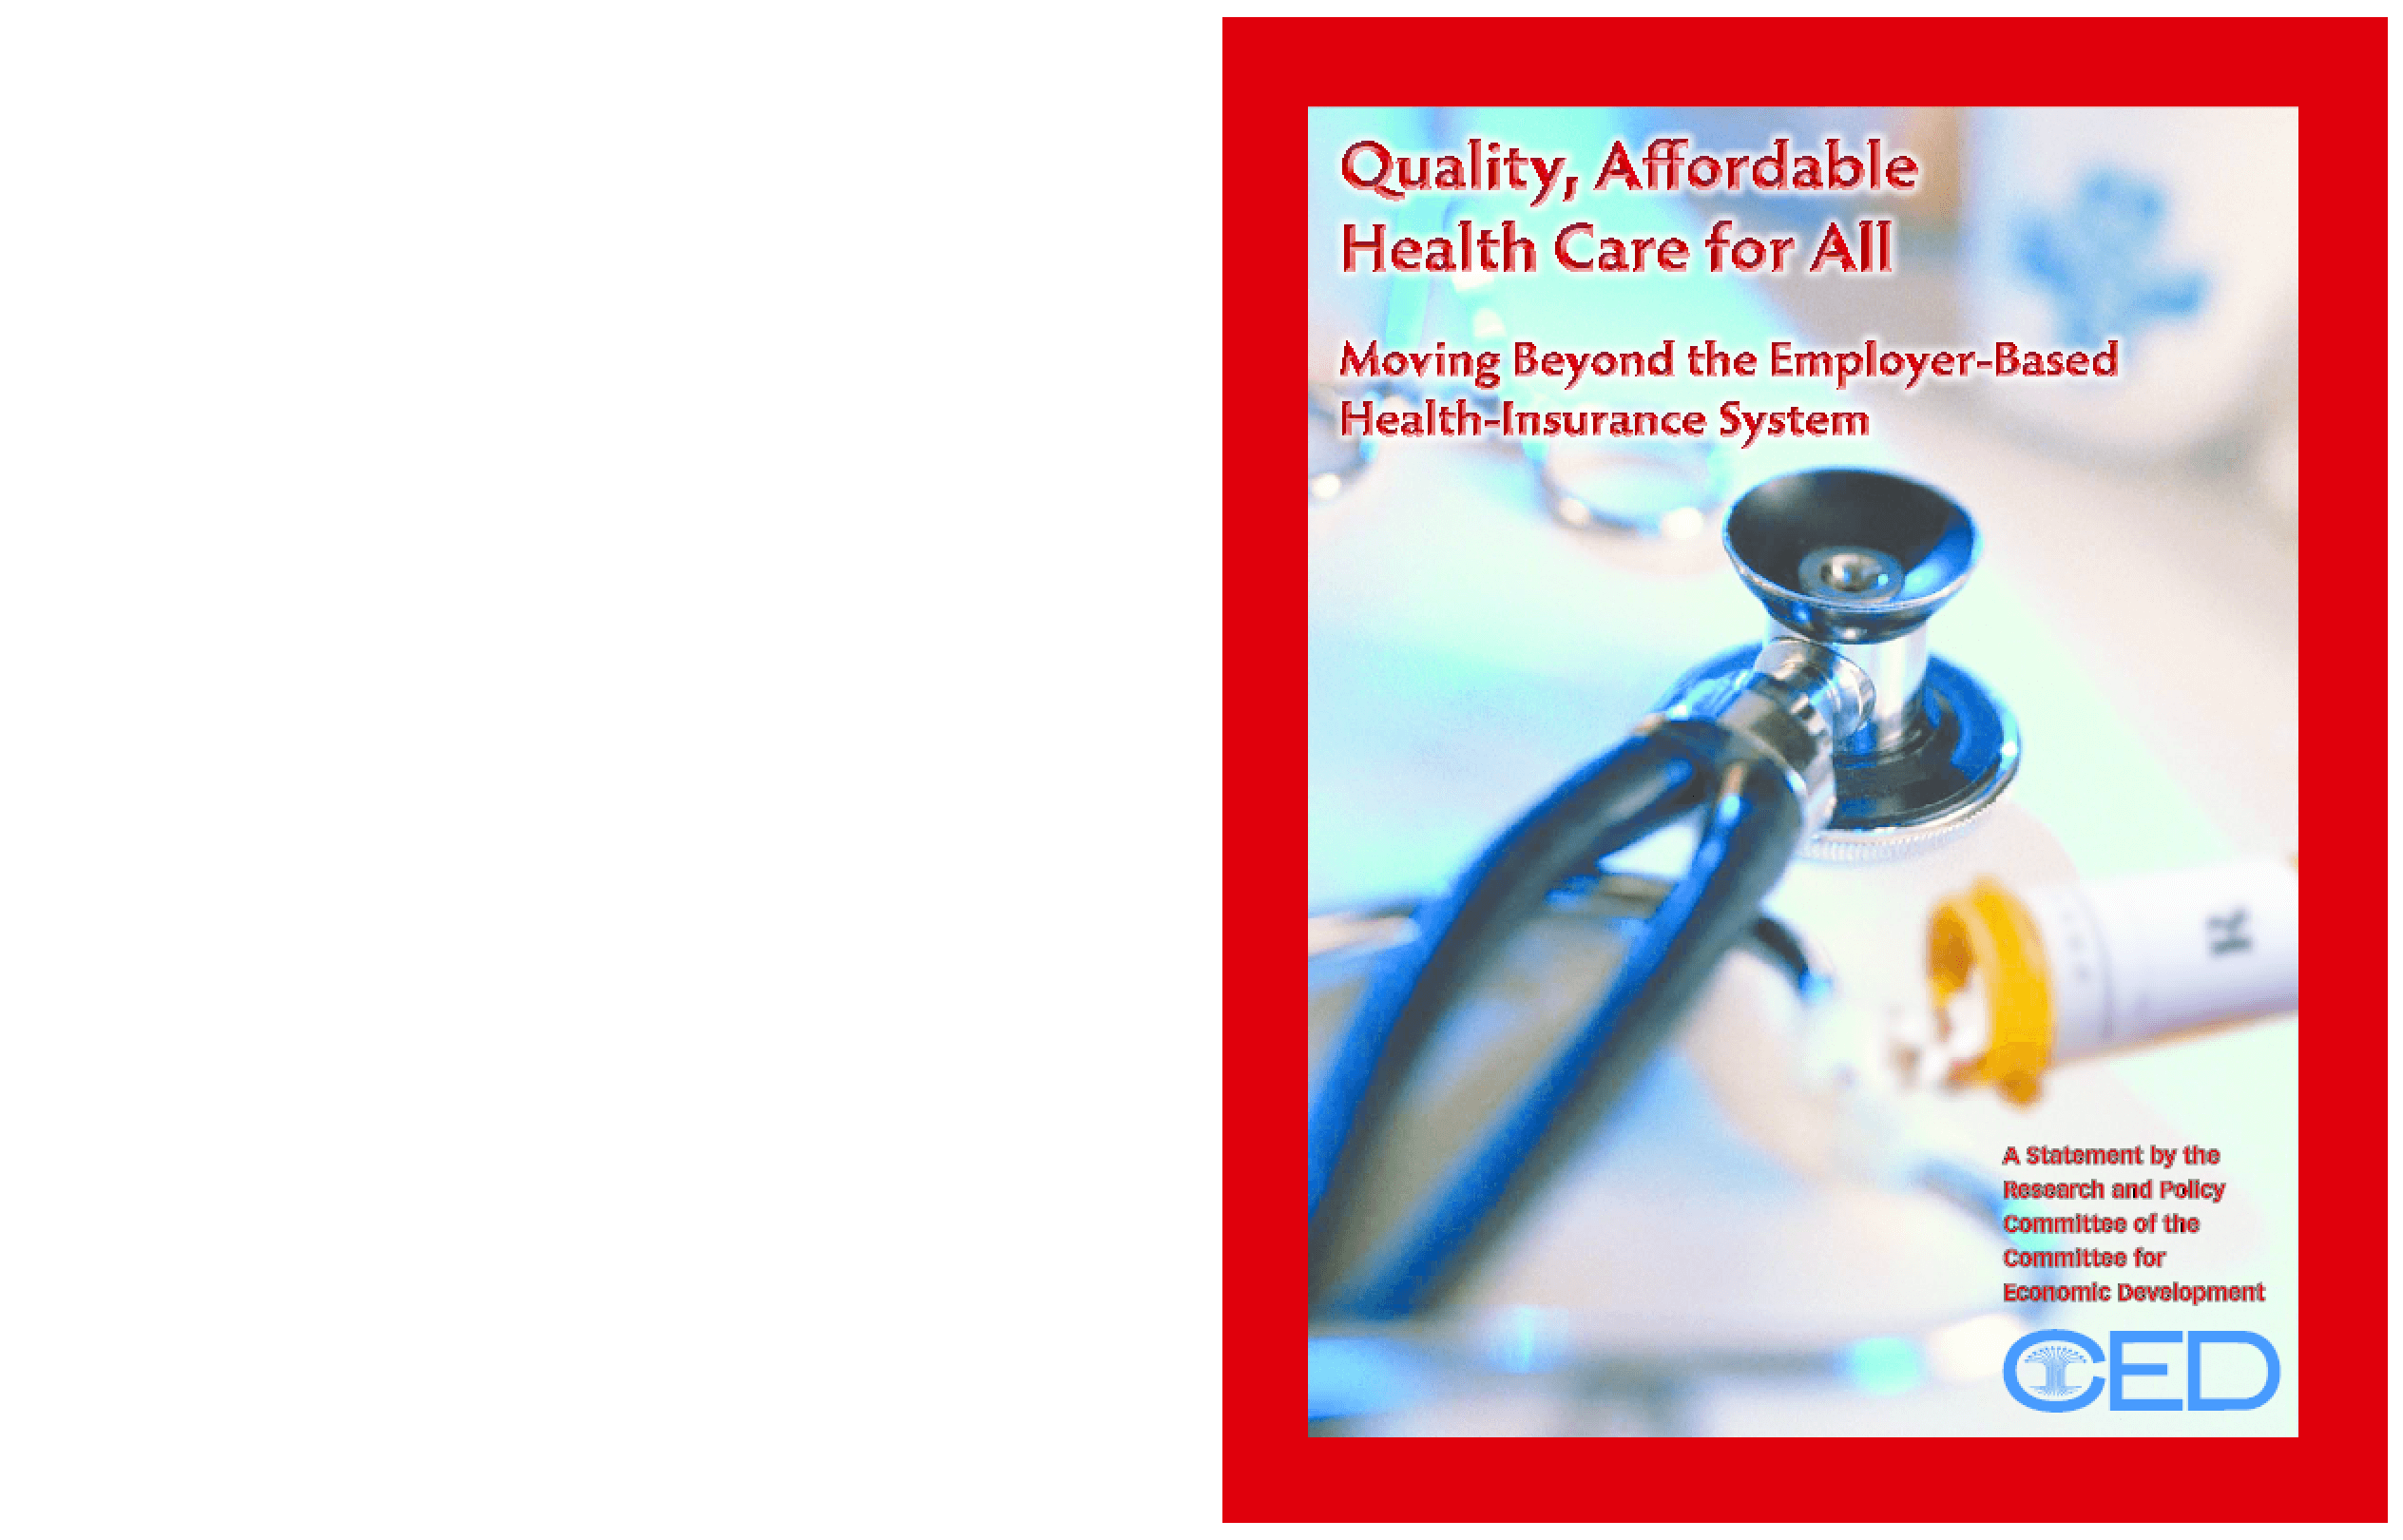 Quality, Affordable Health Care for All: Moving Beyond the Employer-Based Health-Insurance System